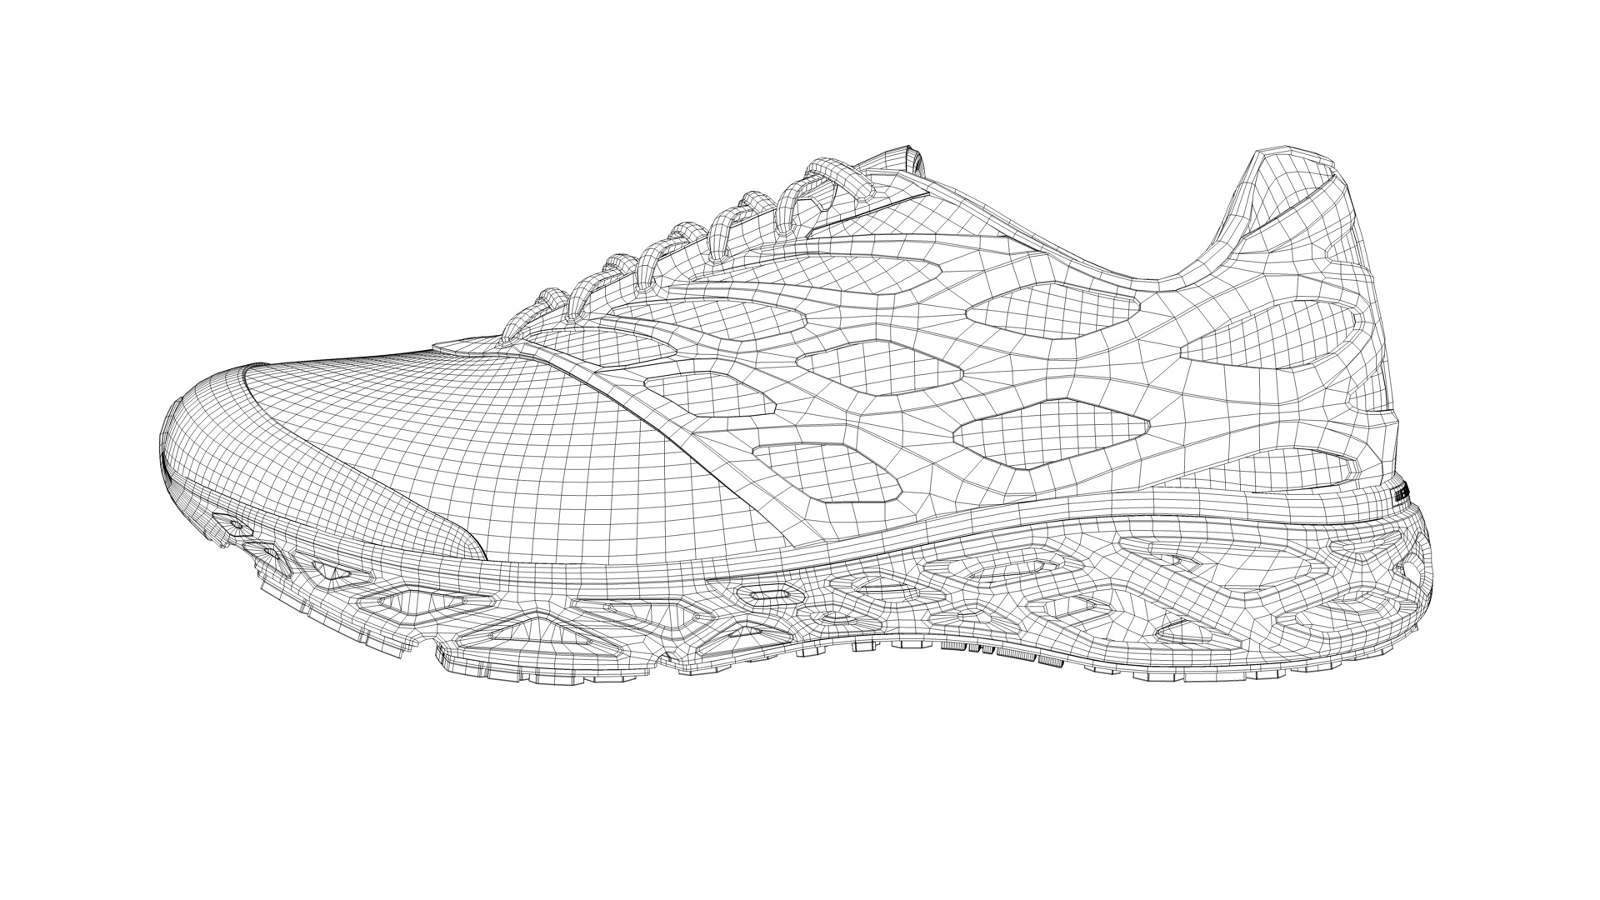 c29ab2b86de603 Final production shoe is a little different if you look it up on the web.  The upper webbing covers the entire shoe and is opaque.